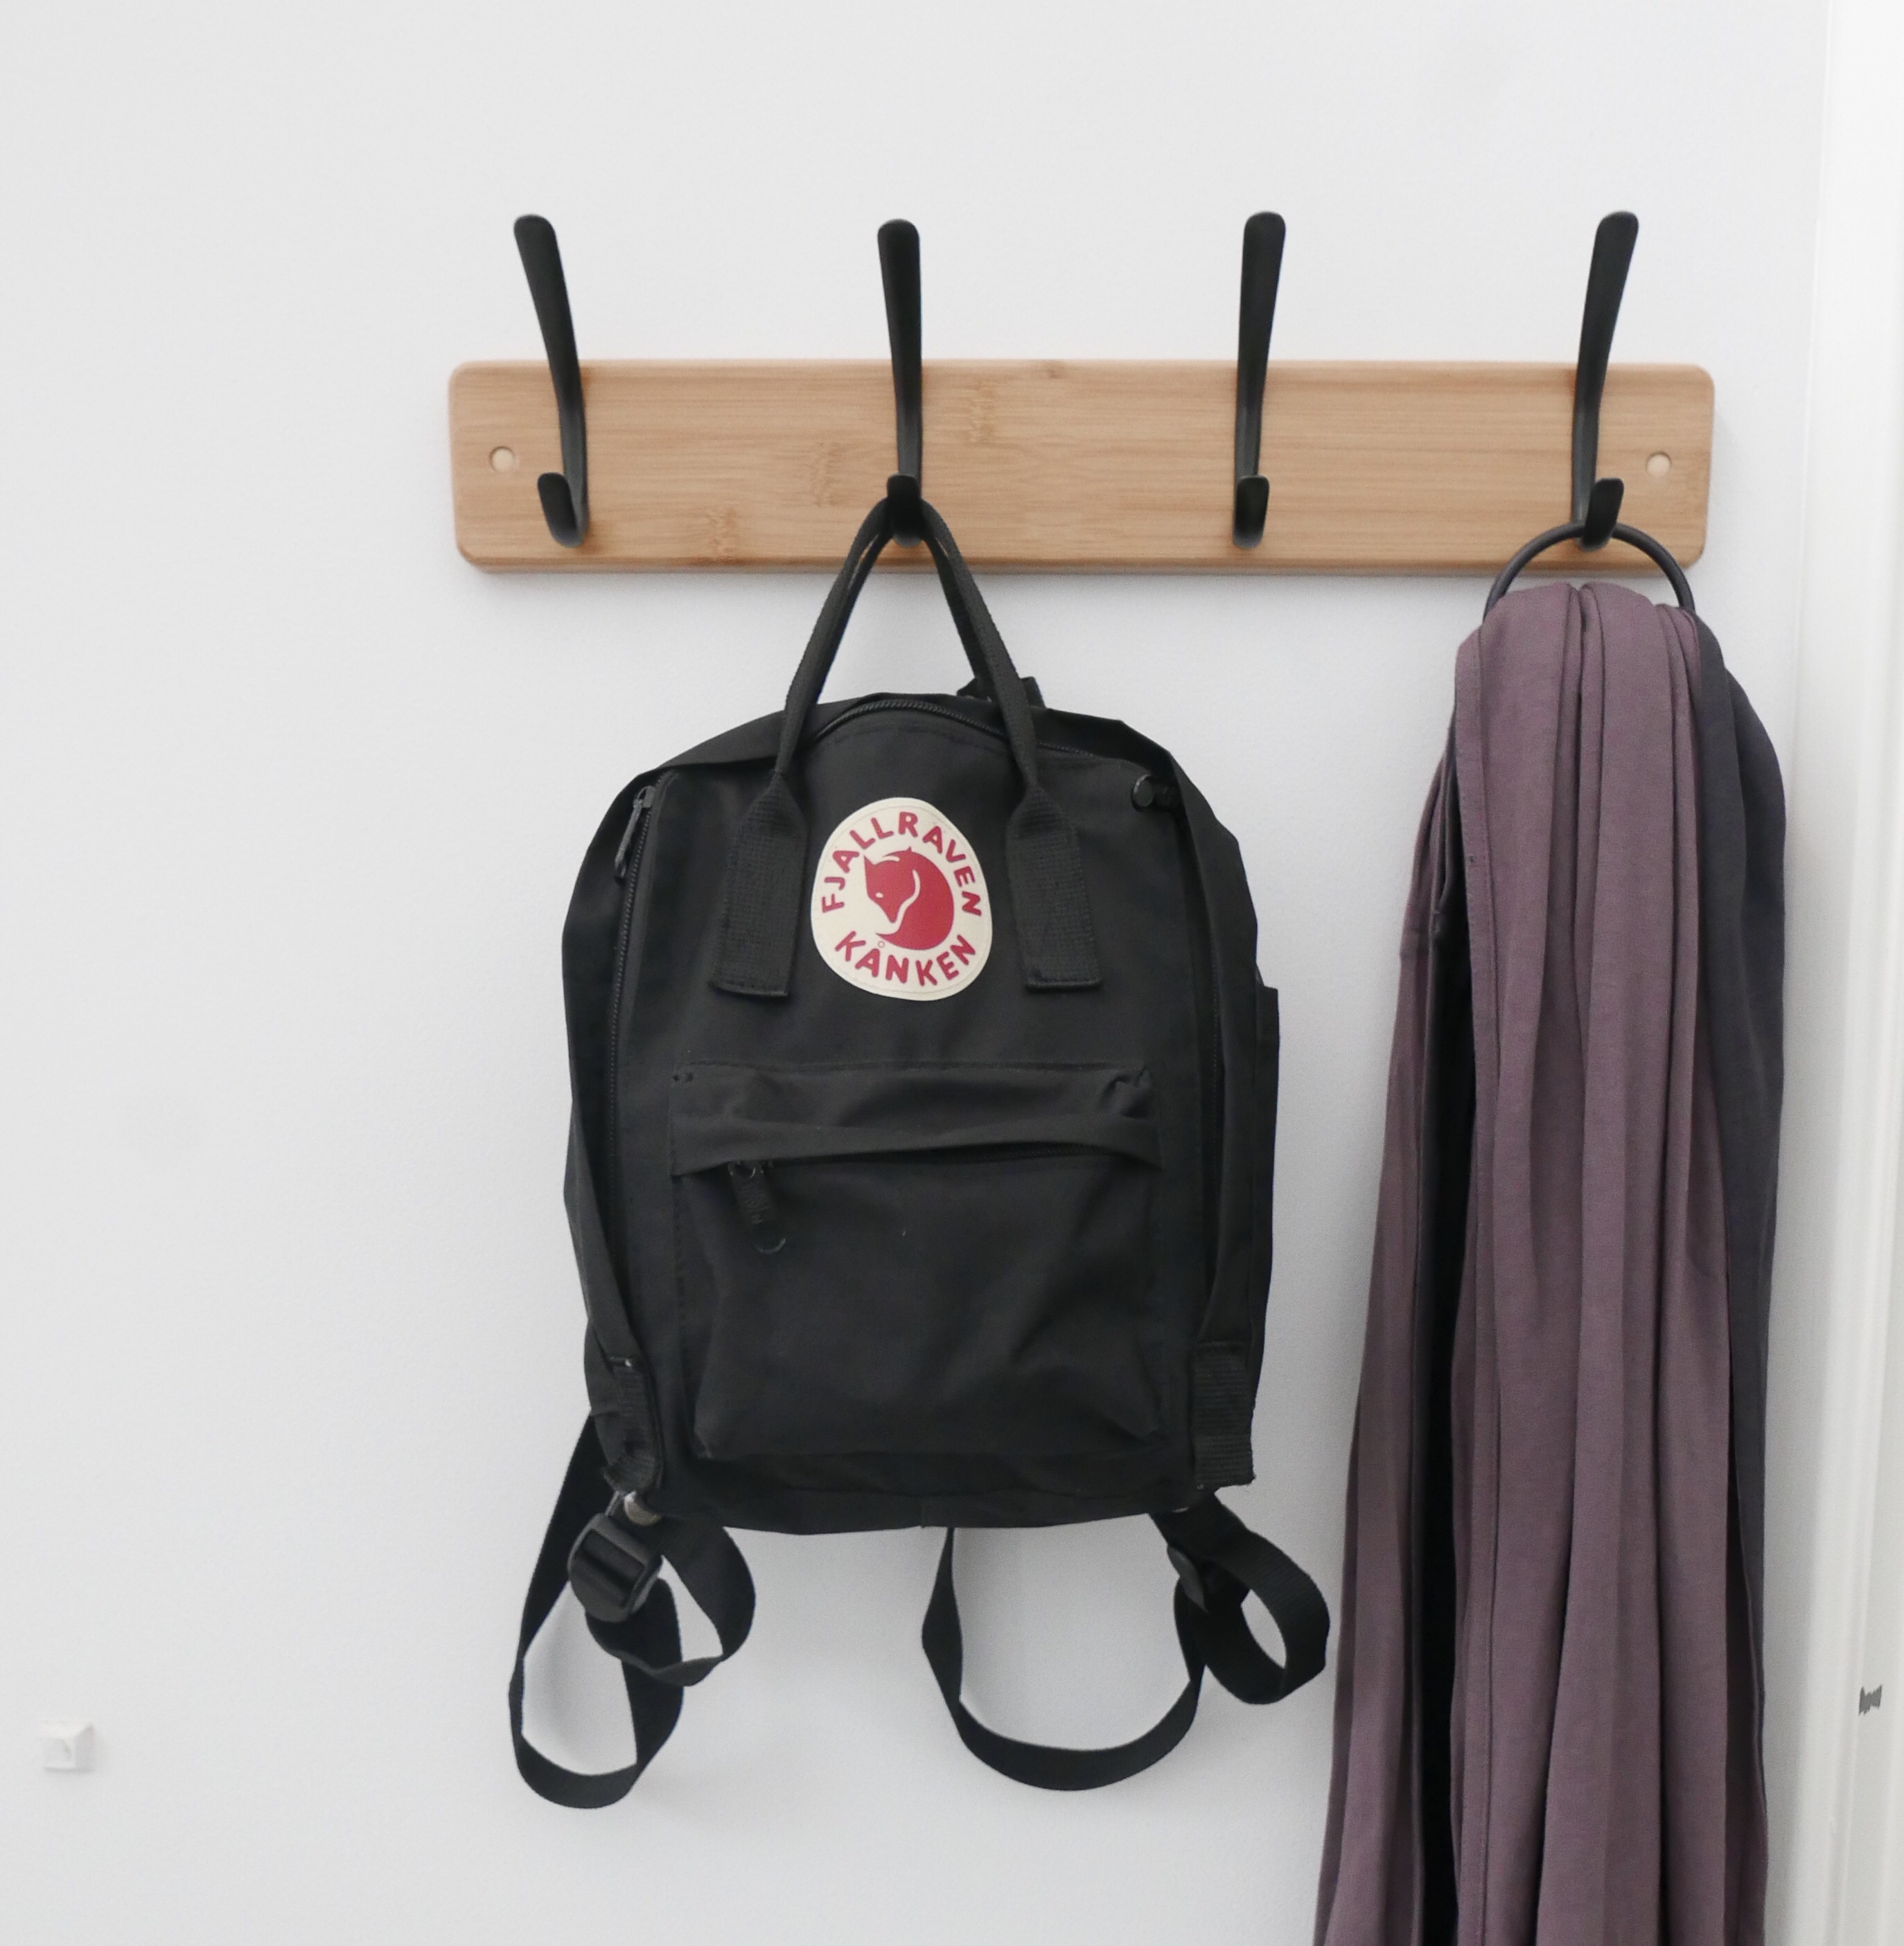 Backpack and ring sling hanging up by my door